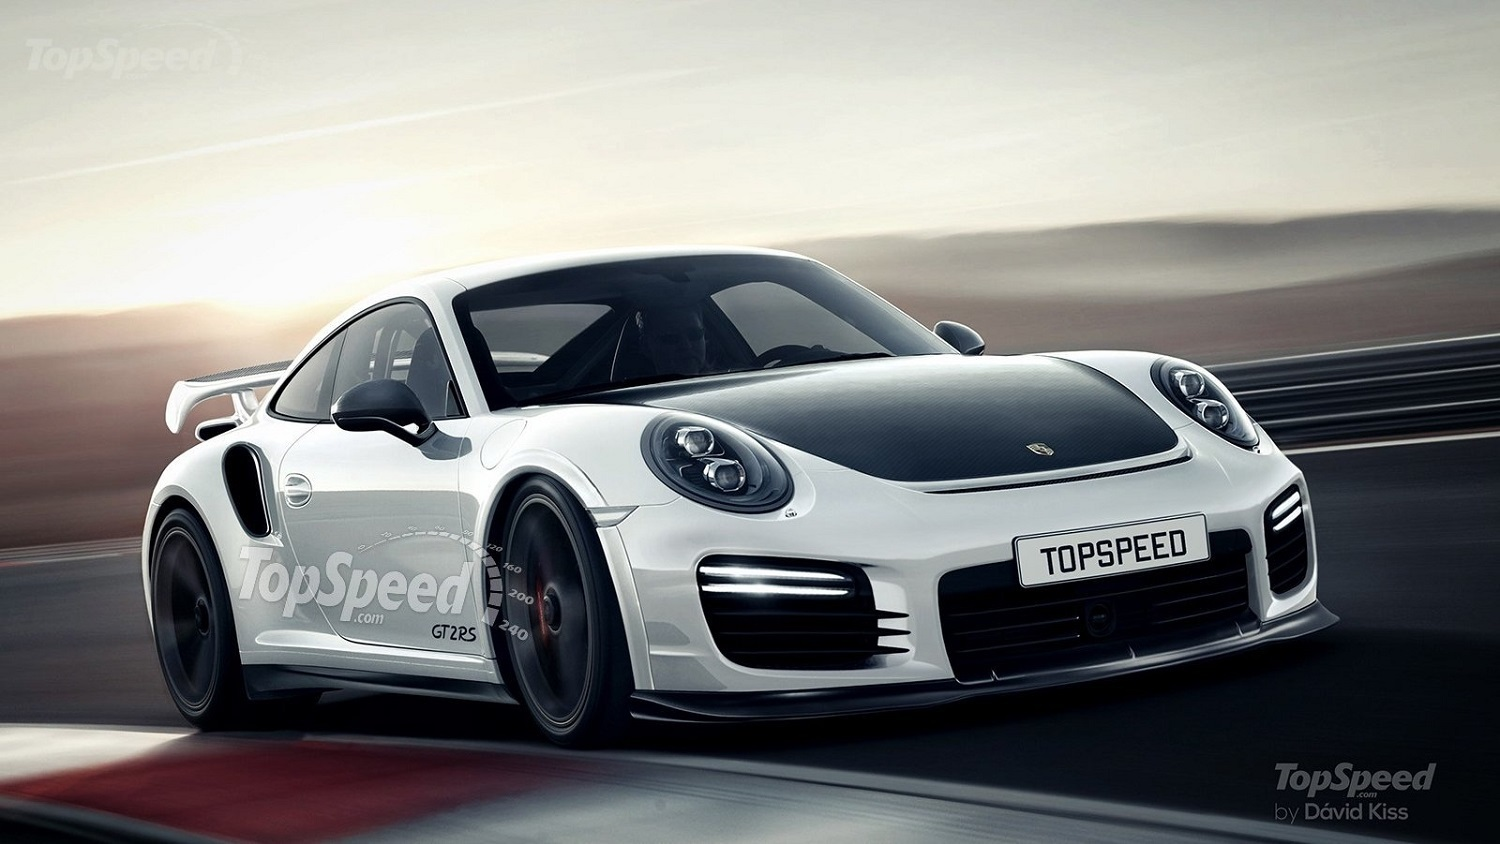 2018 porsche rsr. brilliant 2018 the widowmaker returns porscheu0027s next 911 gt2 rs might get 700 horsepower to 2018 porsche rsr s